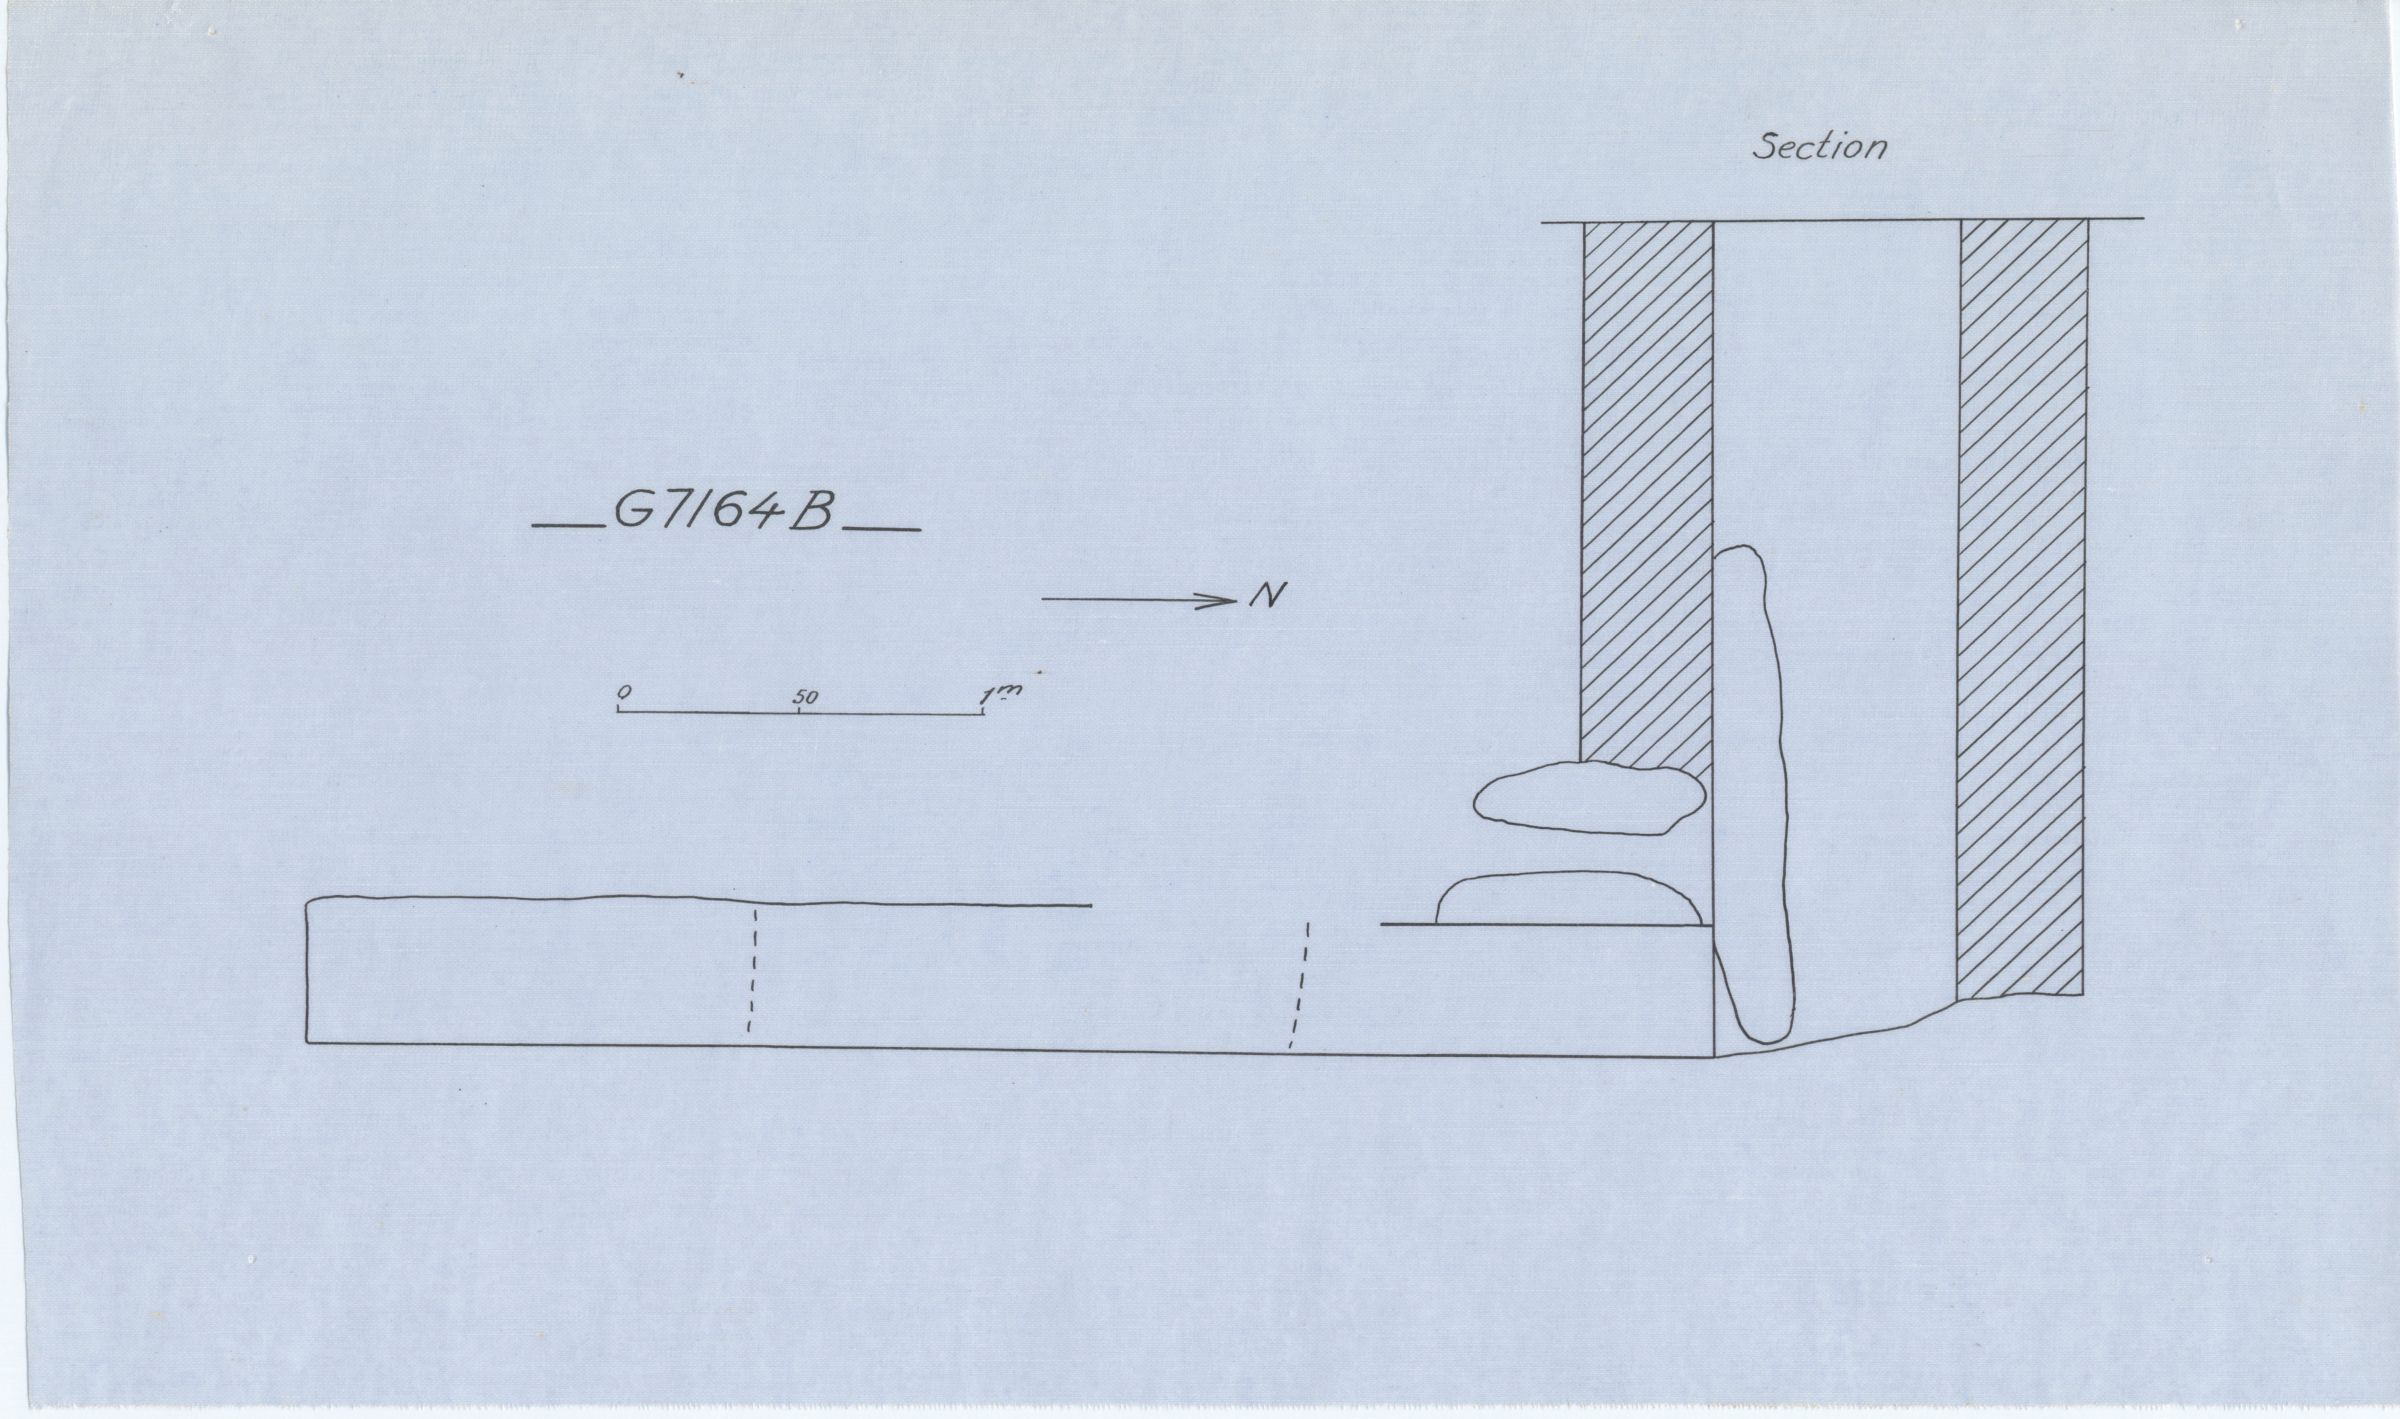 Maps and plans: G 7164, Shaft B